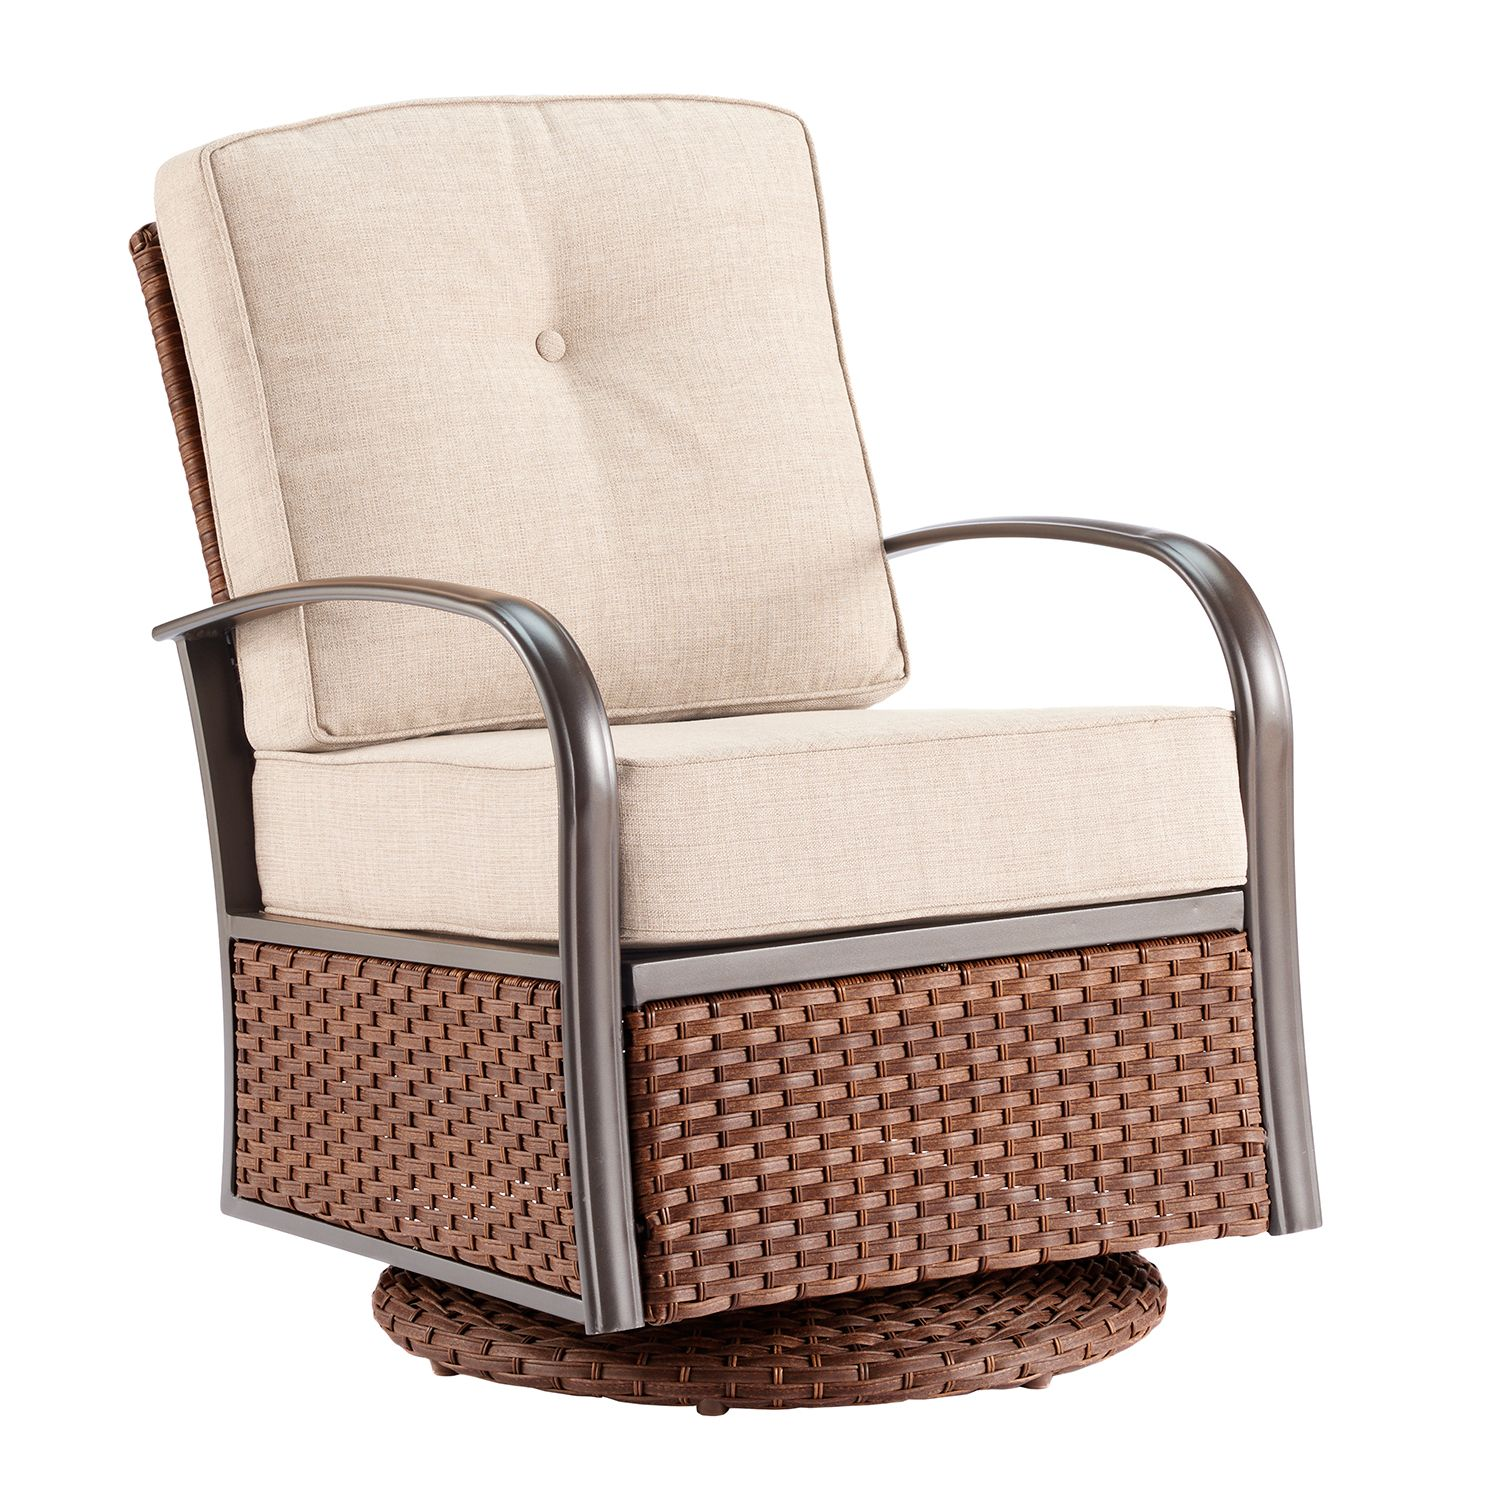 sonoma goods for life brockport swivel chair - Swivel Patio Chairs